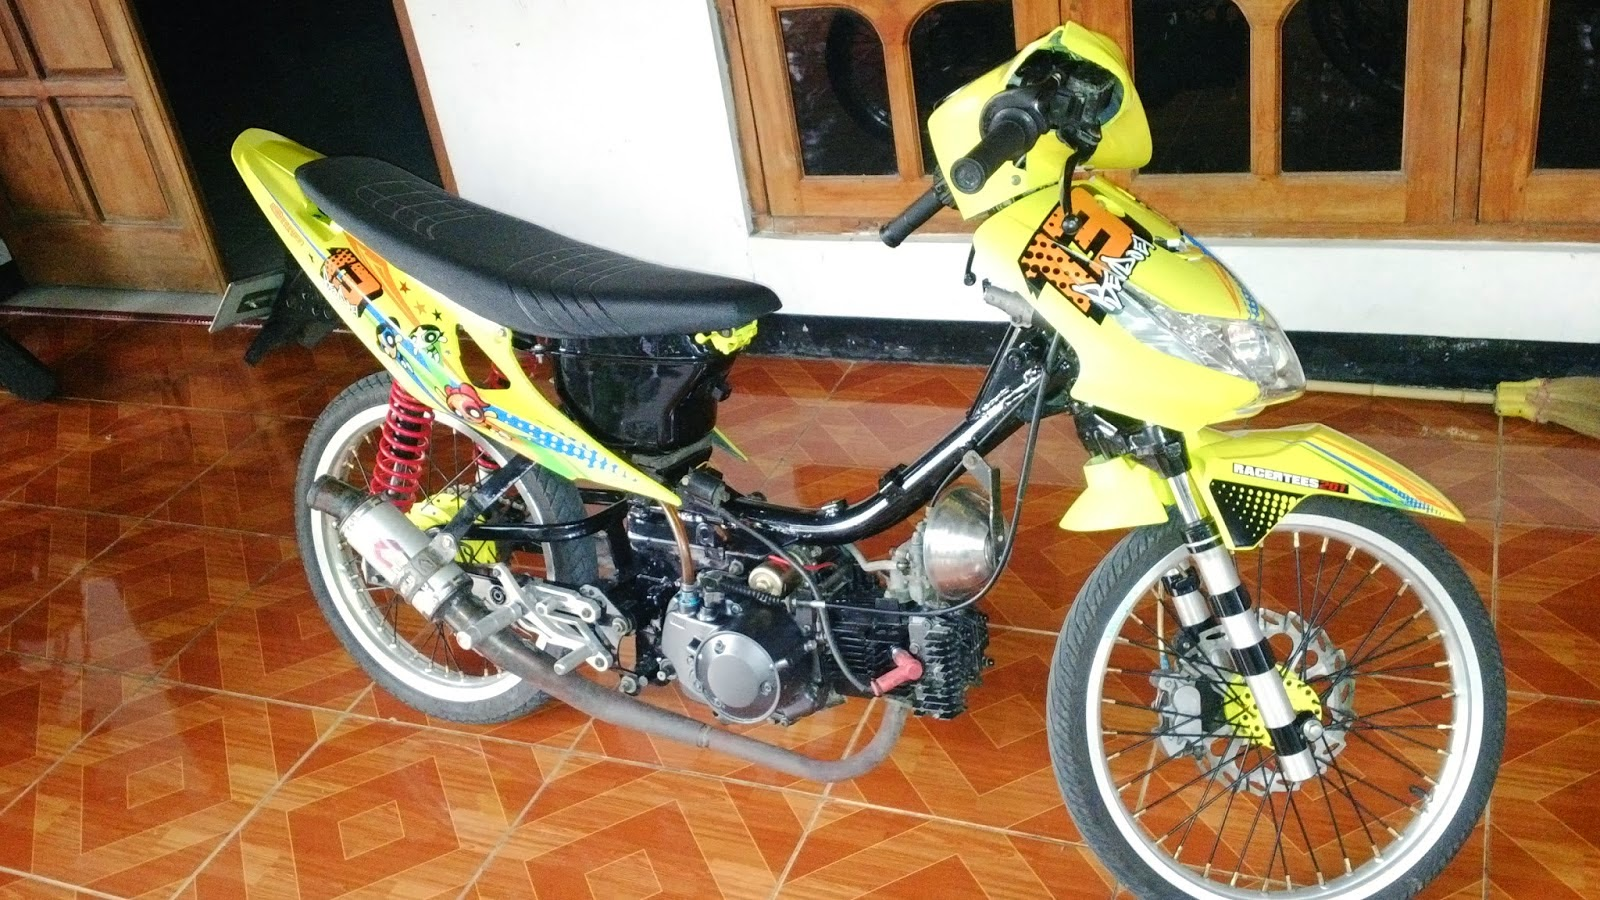 Revo Fit Modifikasi Drag Modifikasi Drag Revo 110